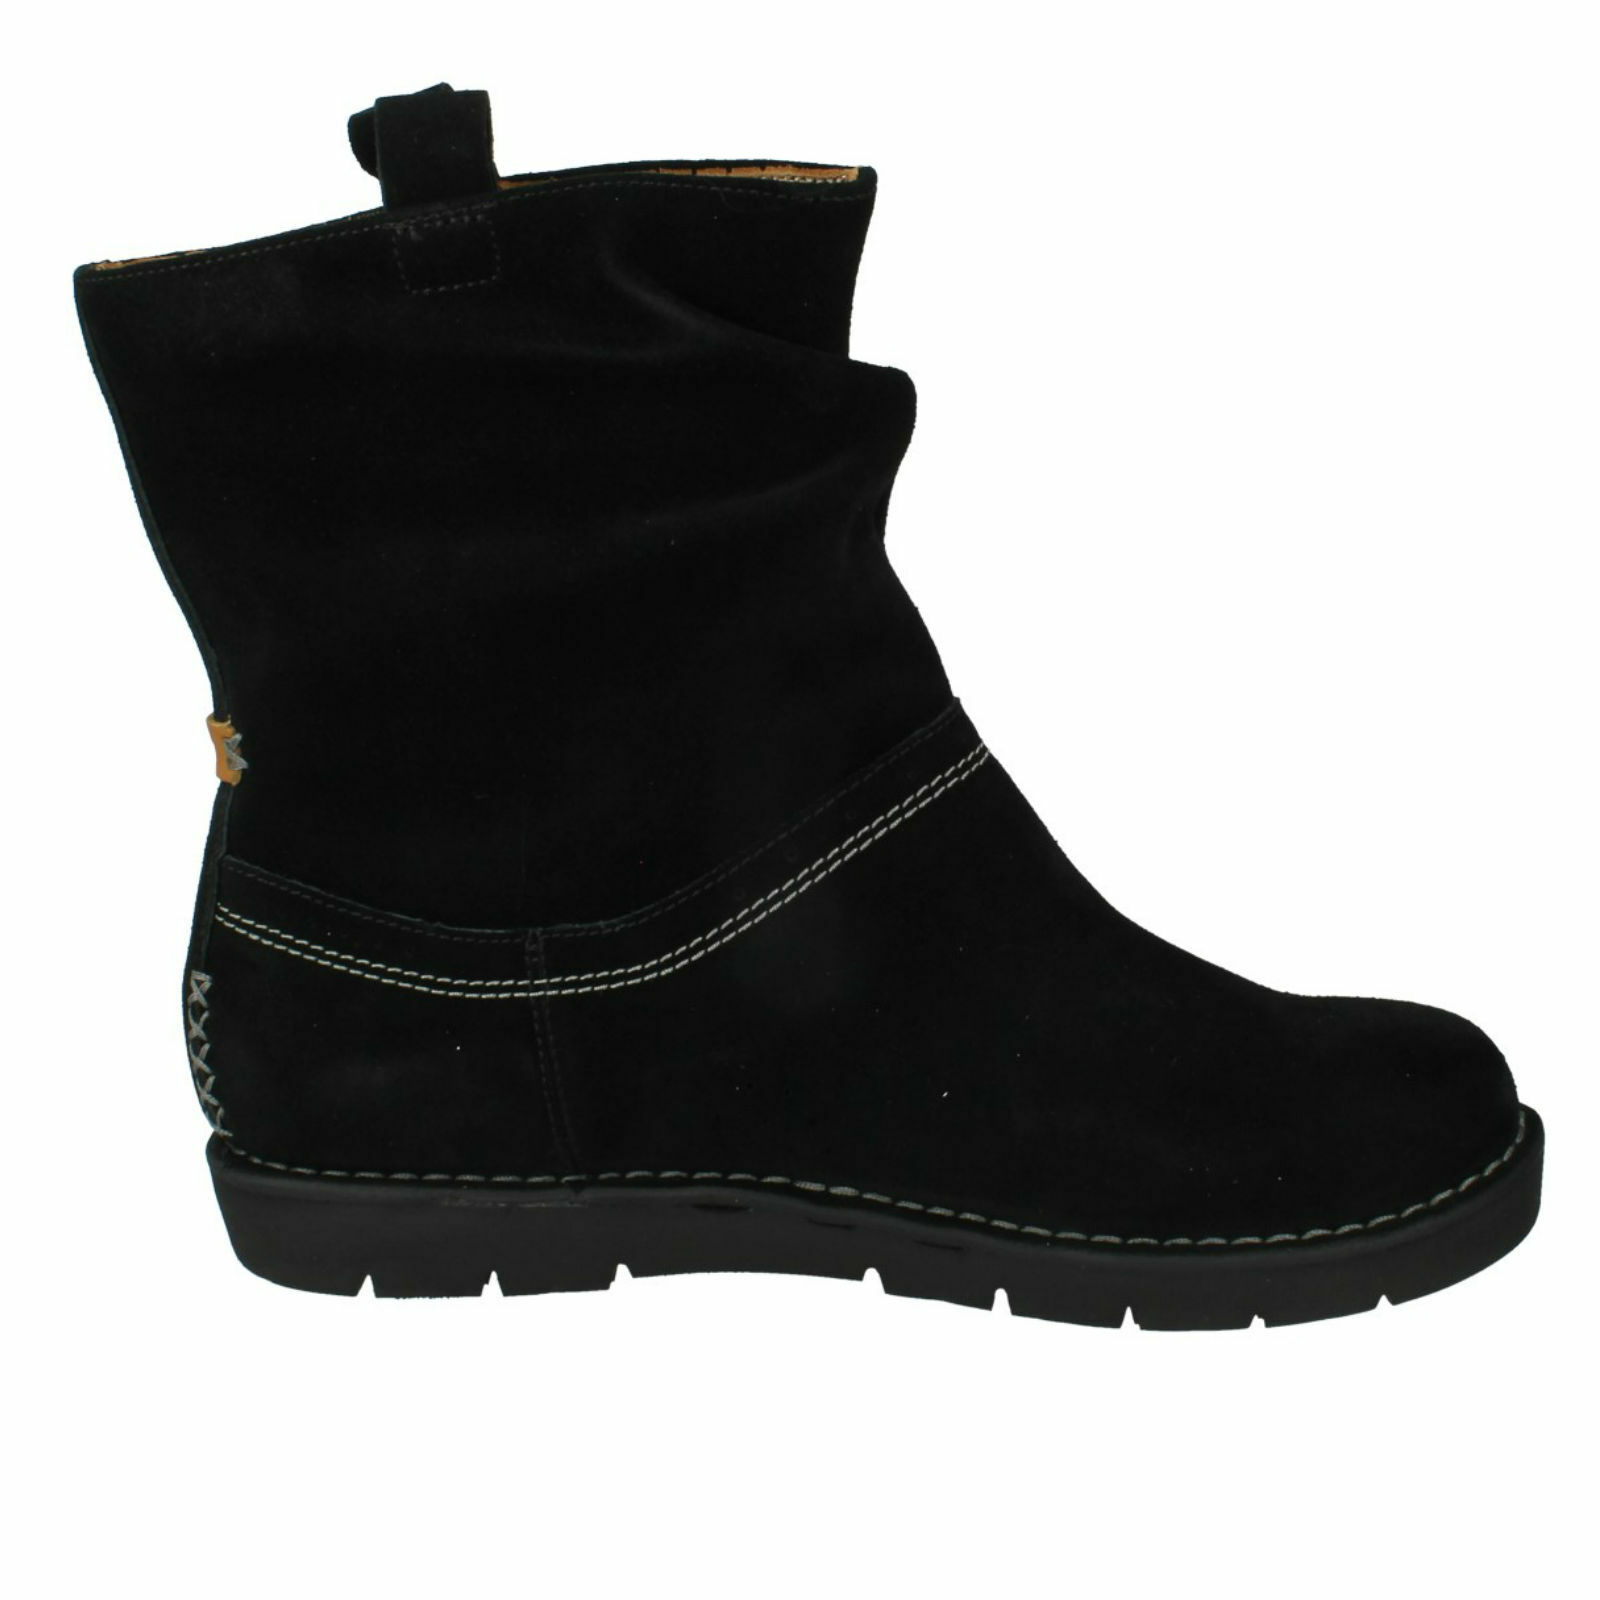 UN ASHBURN LADIES CLARKS UNSTRUCTUrot PULL ON FLAT CASUAL WIDE WIDE WIDE FIT ANKLE Stiefel 6a65ef